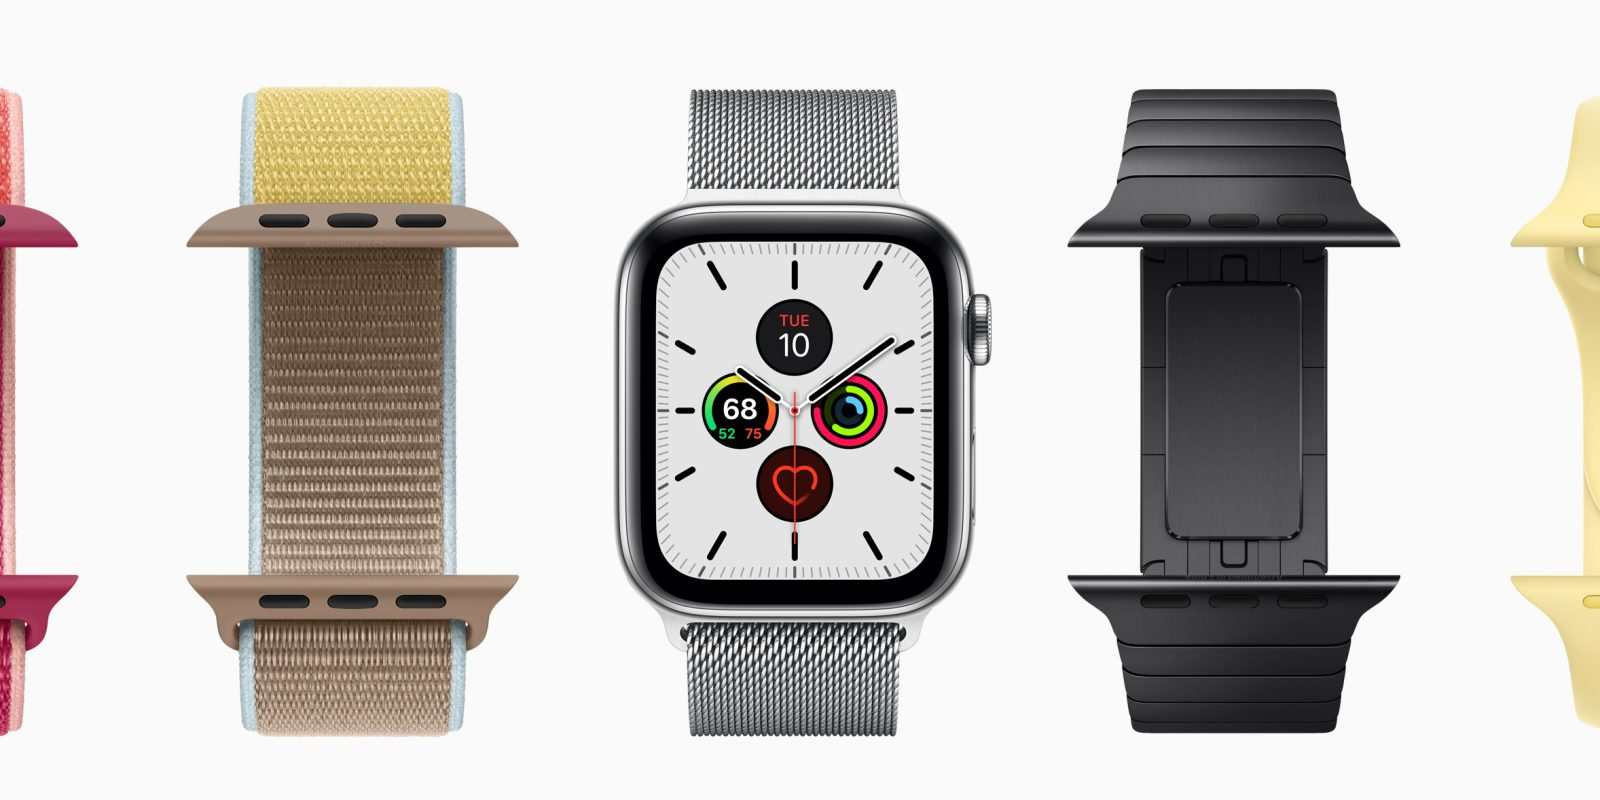 Apple Watch Series 5 is up to $50 off, returning prices to all-time lows